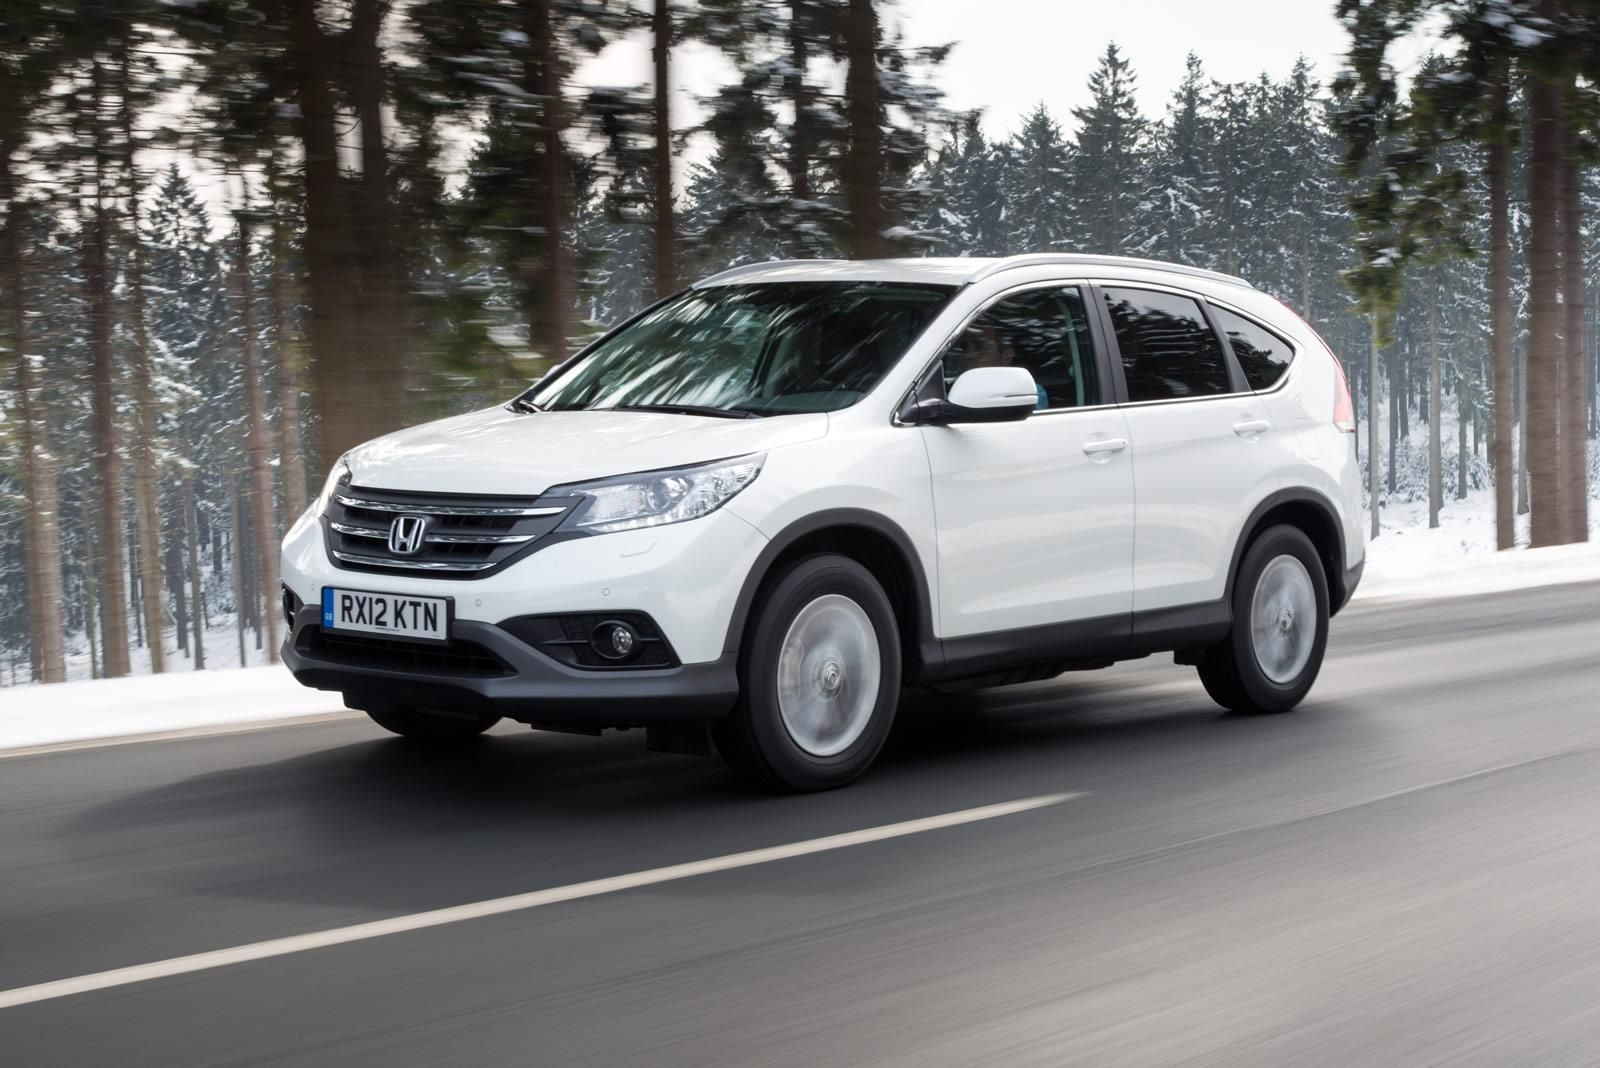 2016 honda cr v is the featured model the 2016 honda crv white image is added in car pictures category by the author on jun